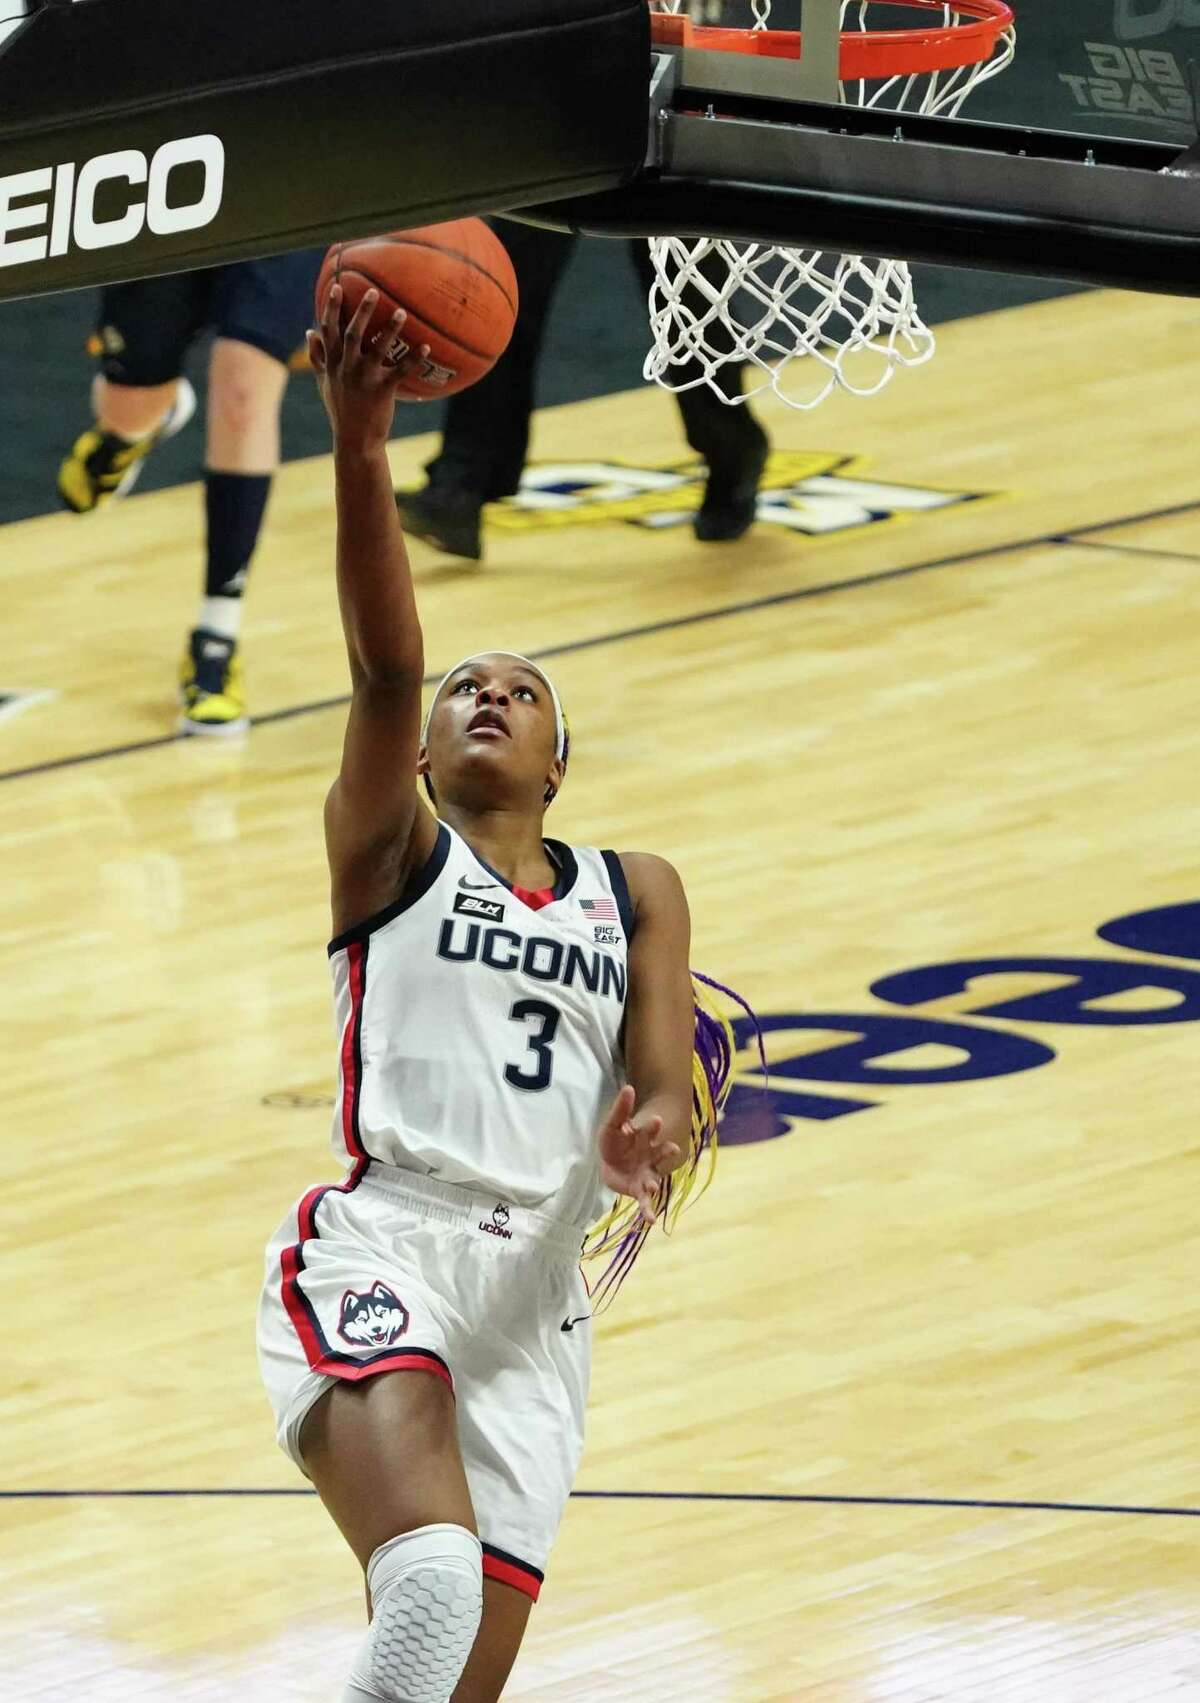 UConn Huskies forward Aaliyah Edwards (3) drives to the basket against the Marquette Golden Eagles in the first half at Mohegan Sun.